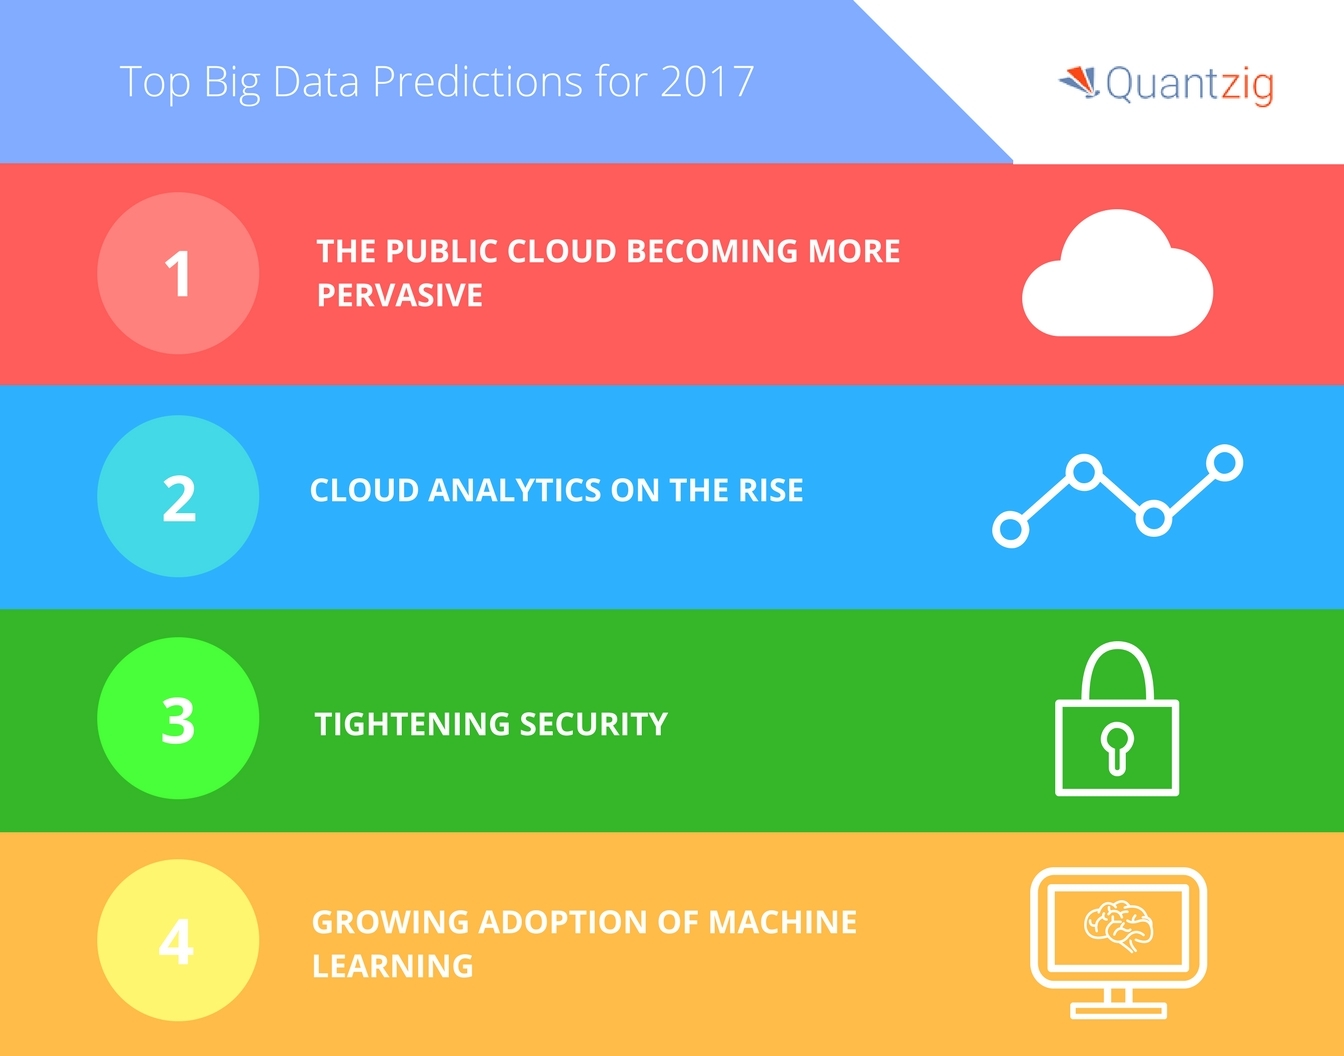 current trends in big data Big data in the insurance industry | market outlook, sales, current trends, key players, analysis and forecast 2018 to 2030 by radiant insights, inc posted on september 21, 2018 radiant insights, inc.